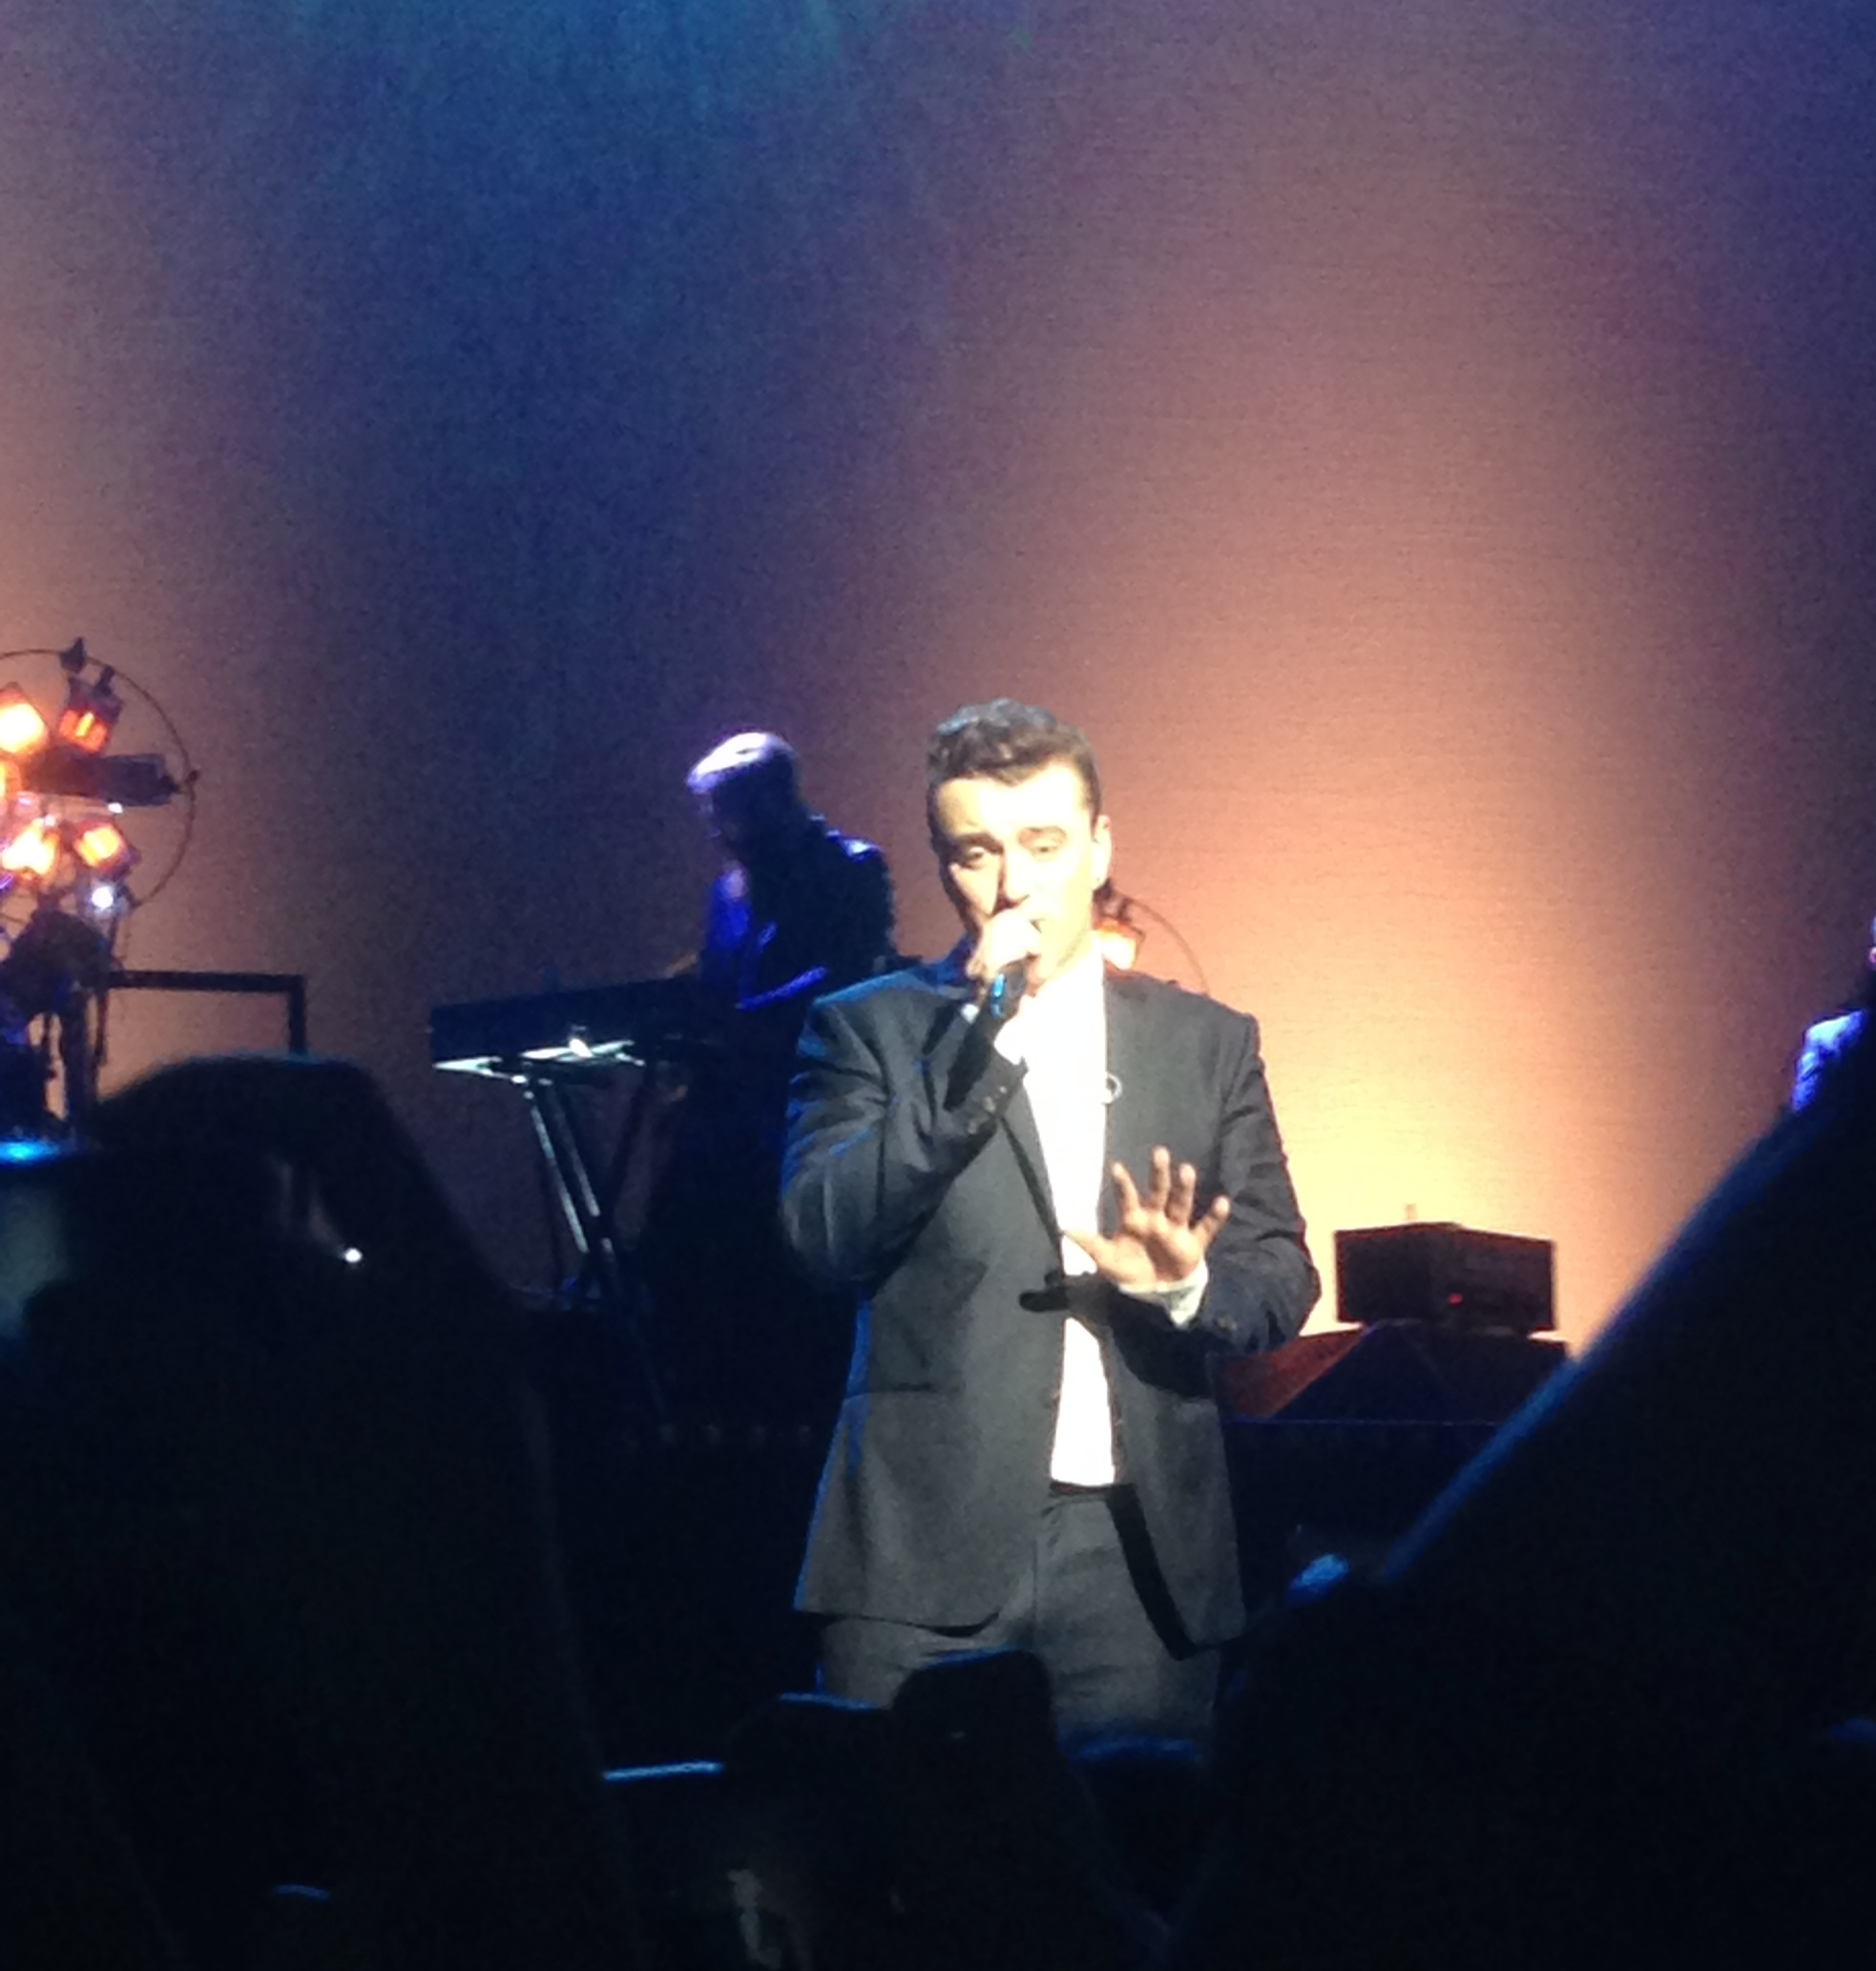 Sam smith plays seattle music mix daily breaking music news music forums music blog music chat concert news festival lineups